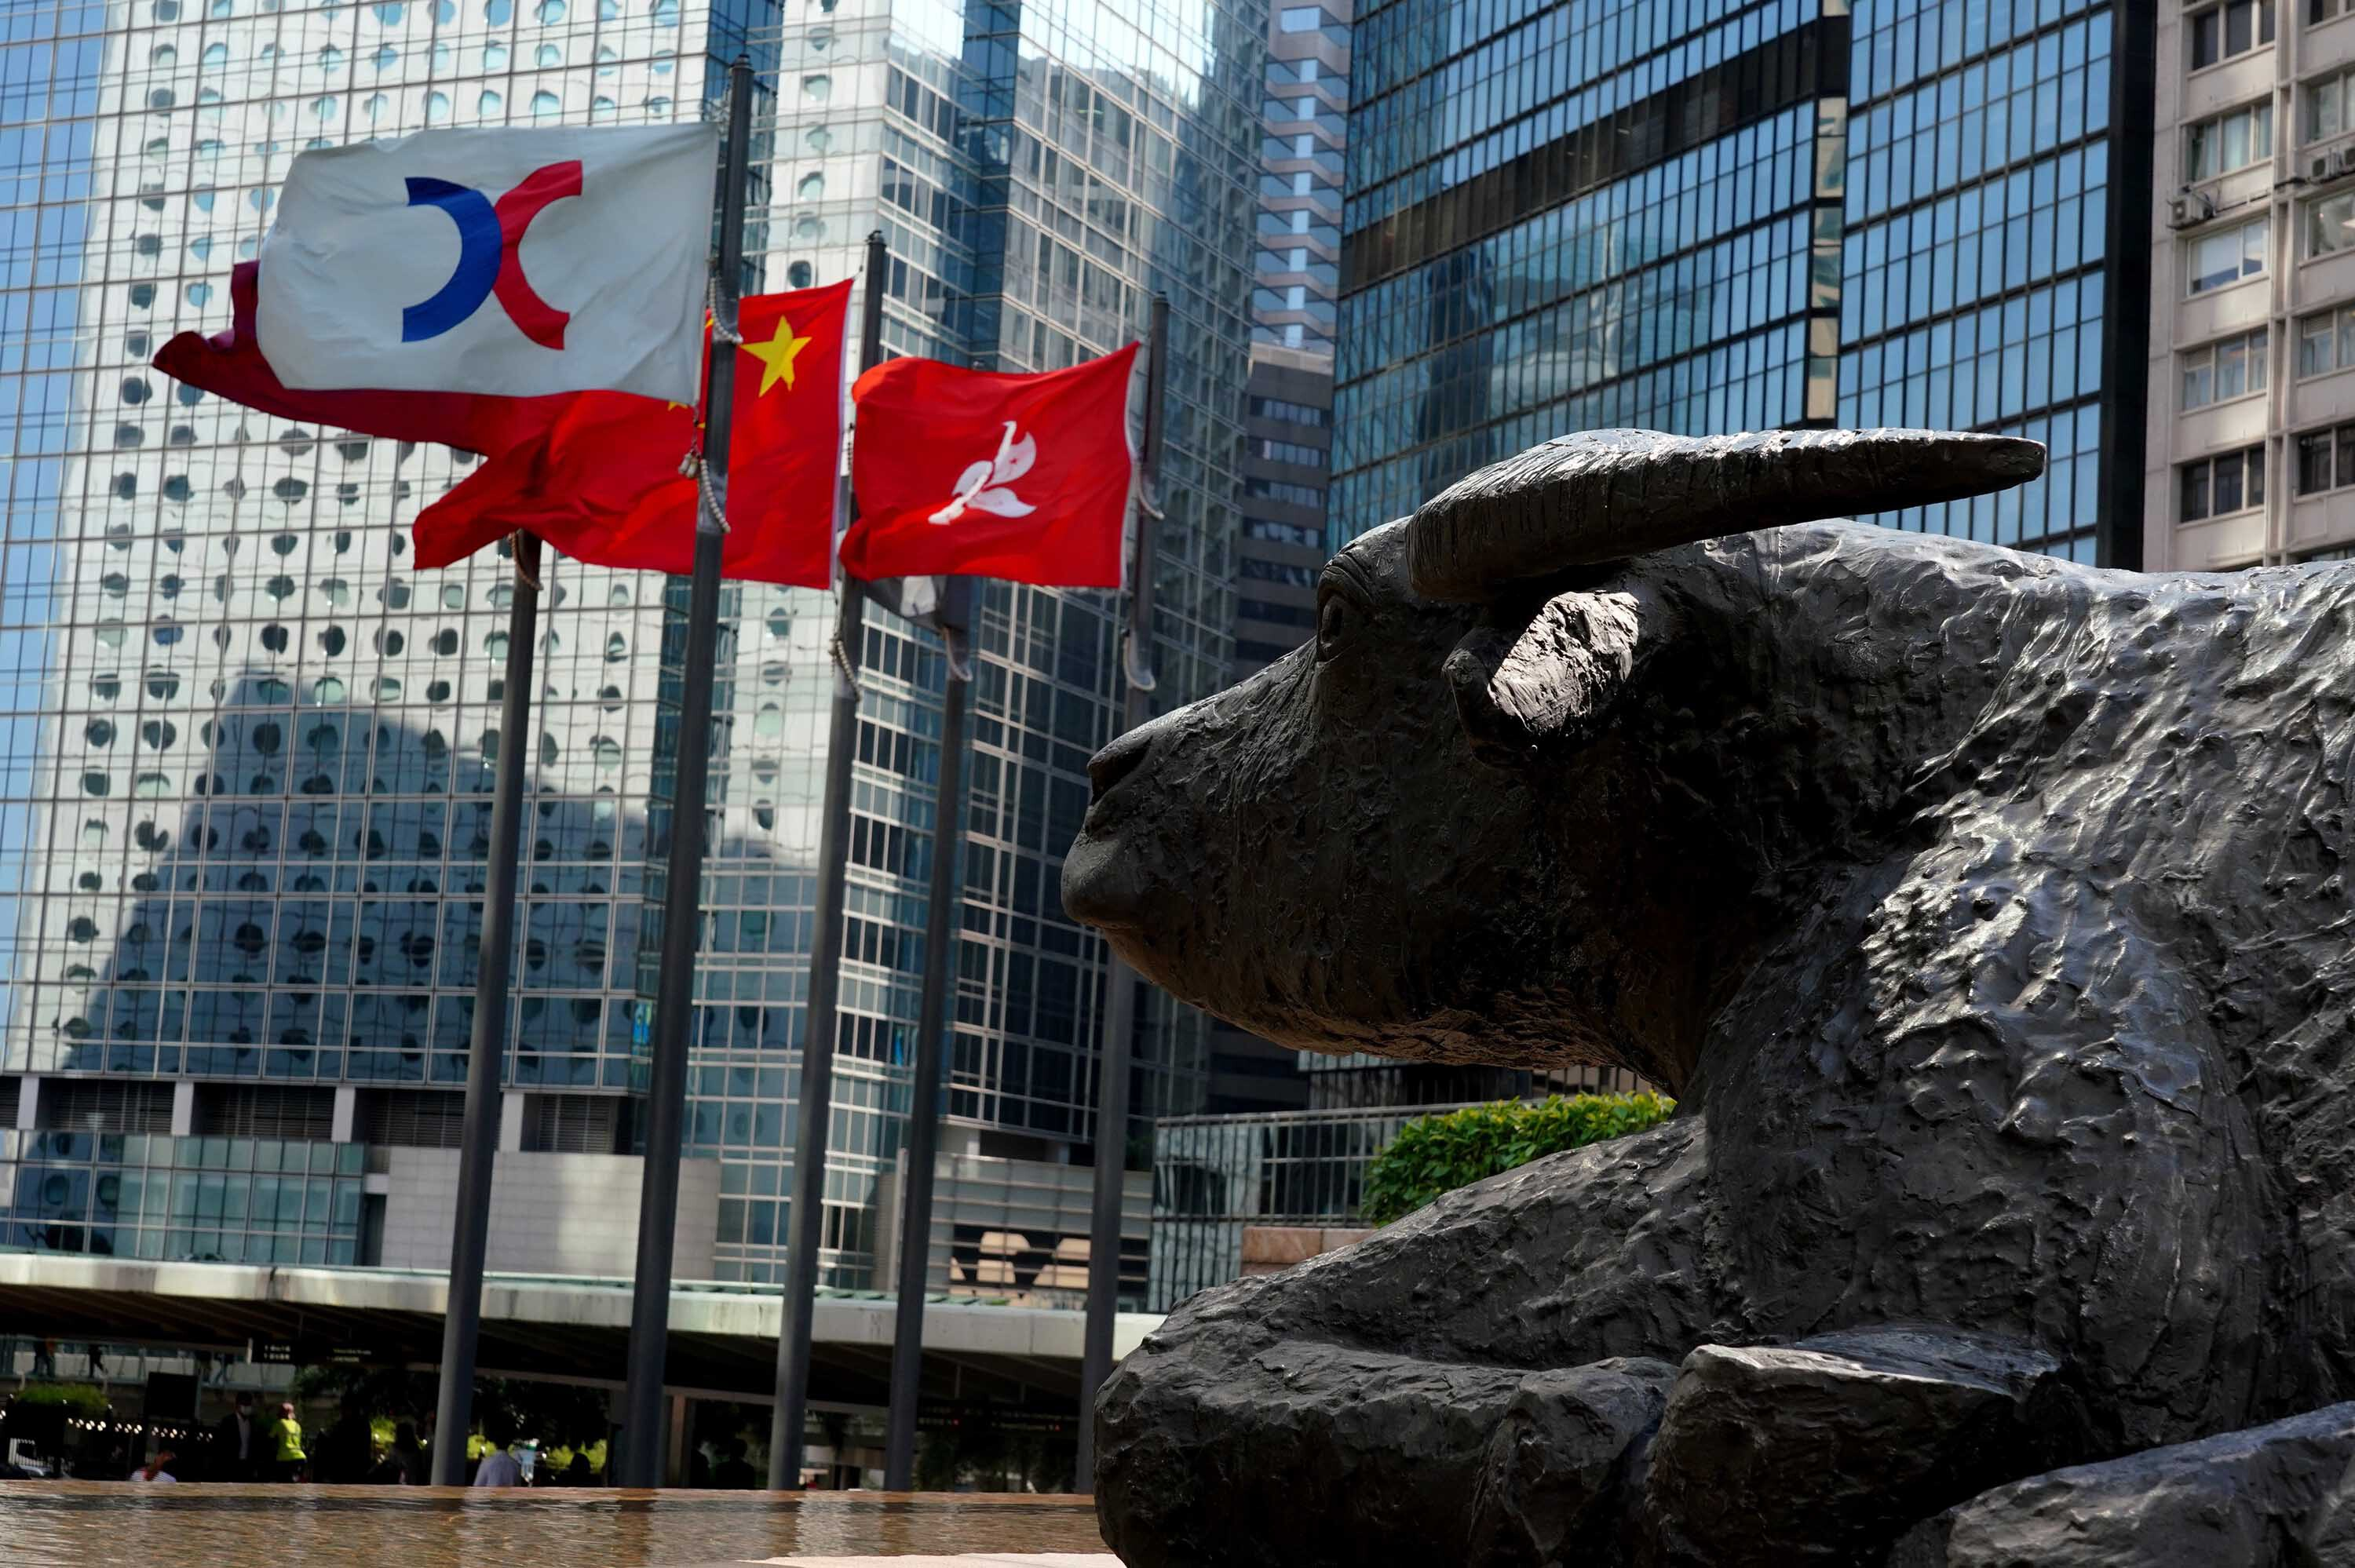 Beijing calls for calm after historic tech stock rout